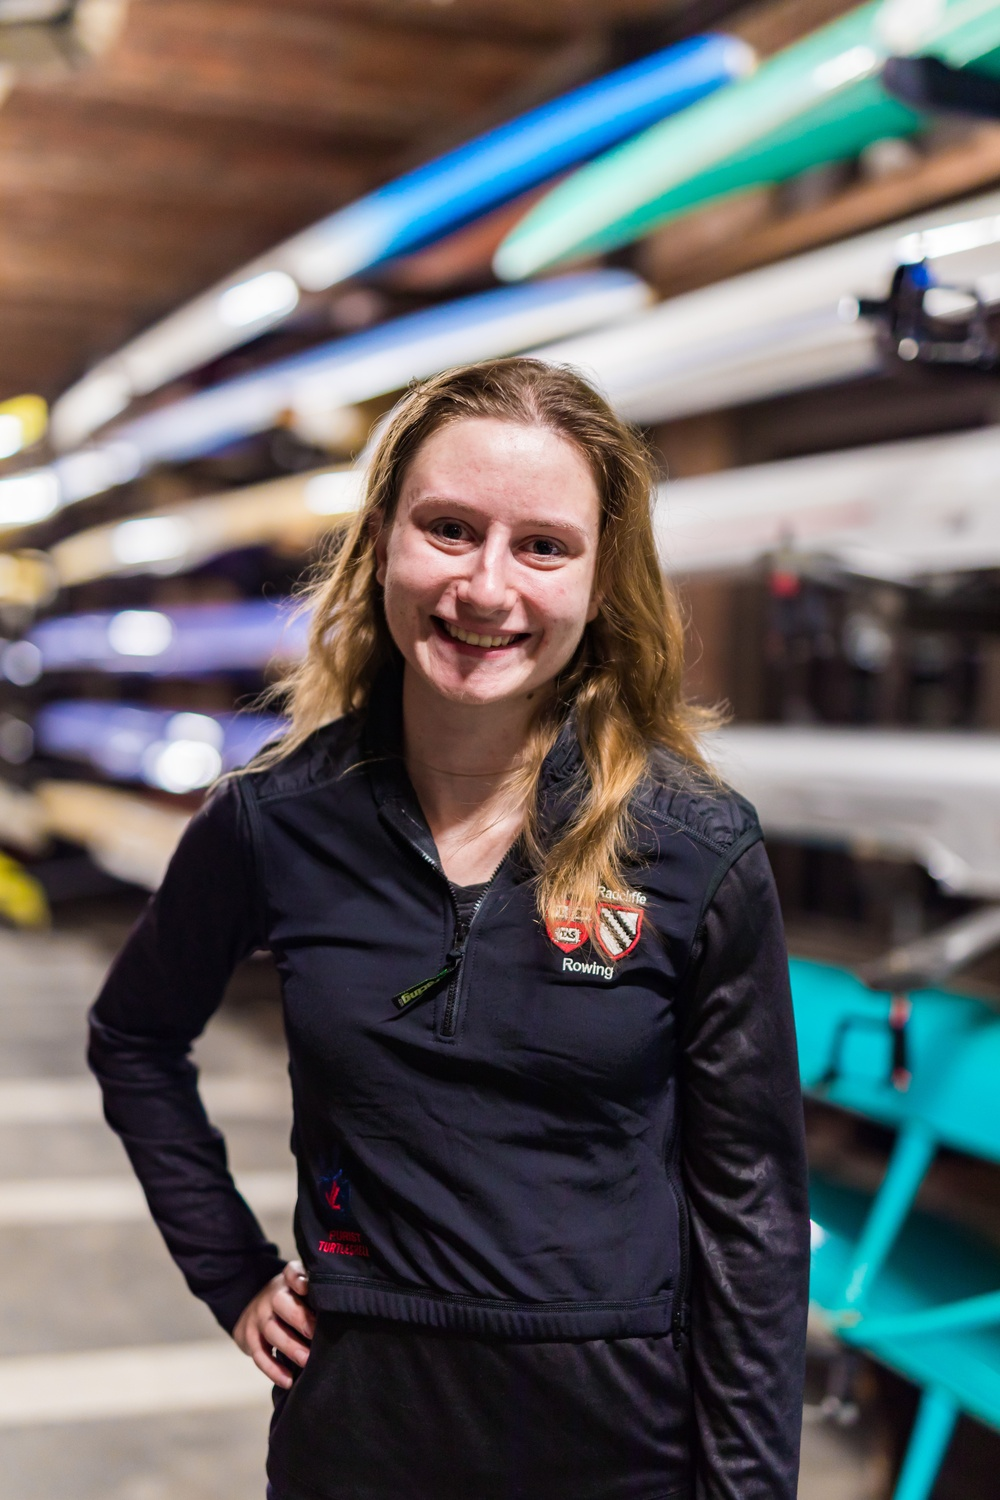 Krista Anderson, along with the rest of the coxswains across the crew program, are just as responsible for motivation as they are for navigation.